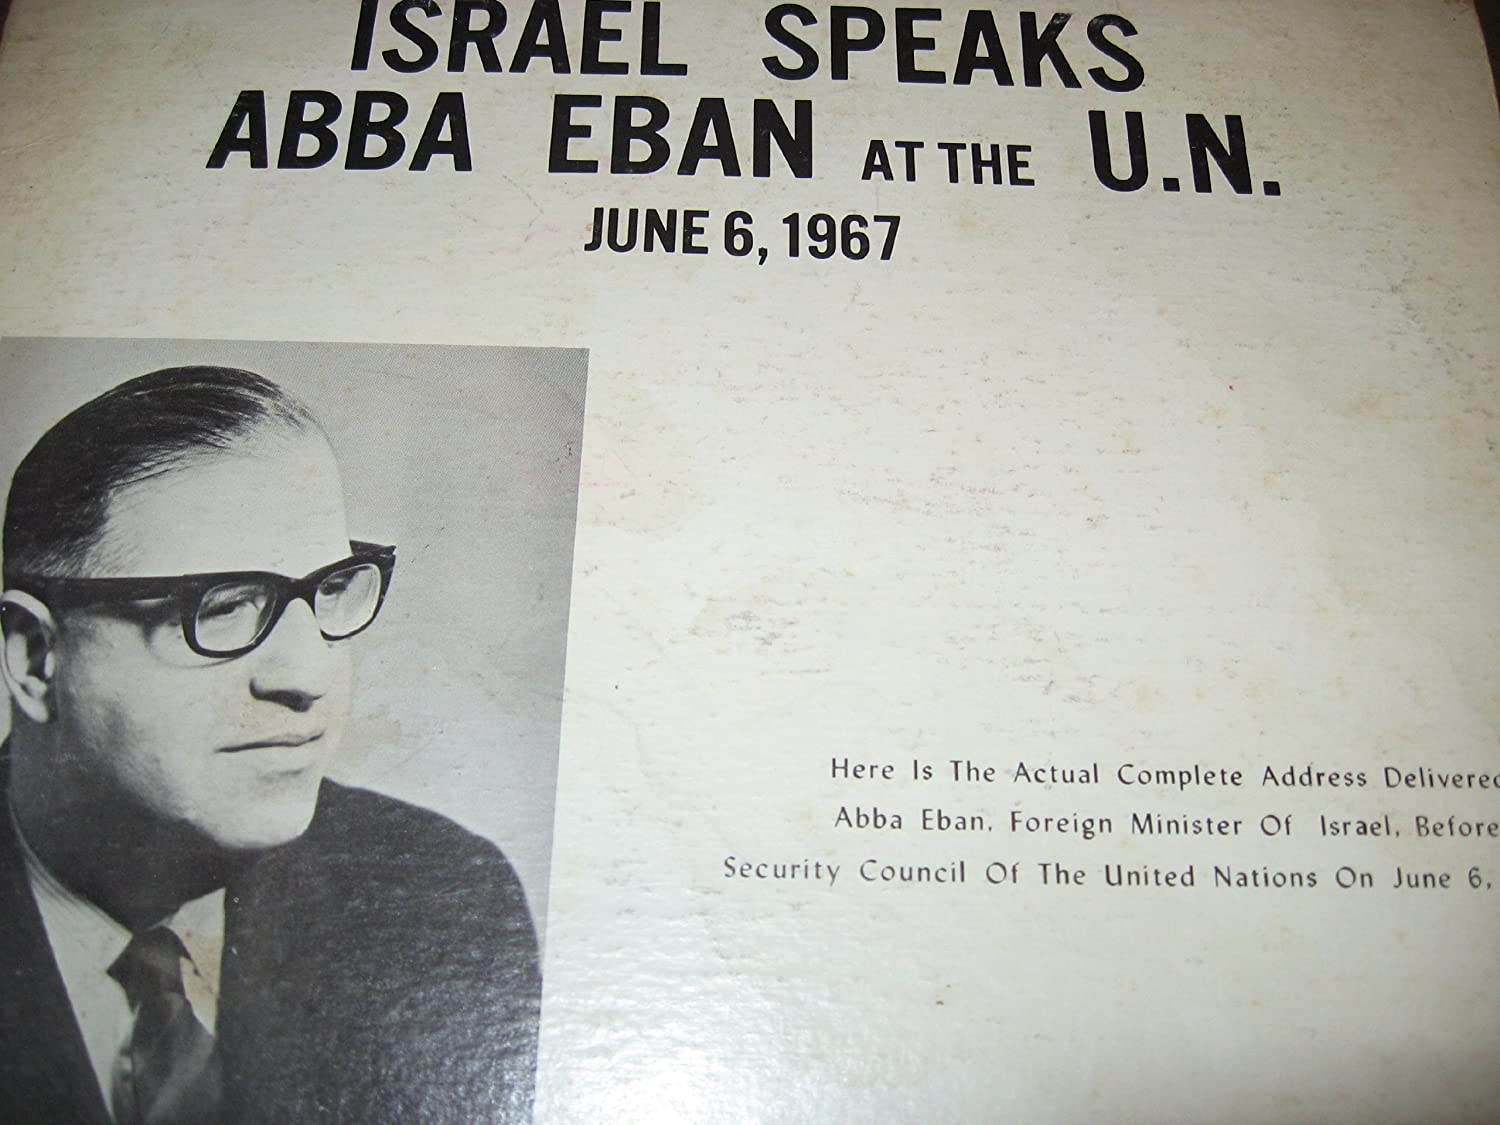 Outlet SALE Israel Speaks: Abba Eban at Import Canadian the U.N. 6-6-1967 Fort Worth Mall